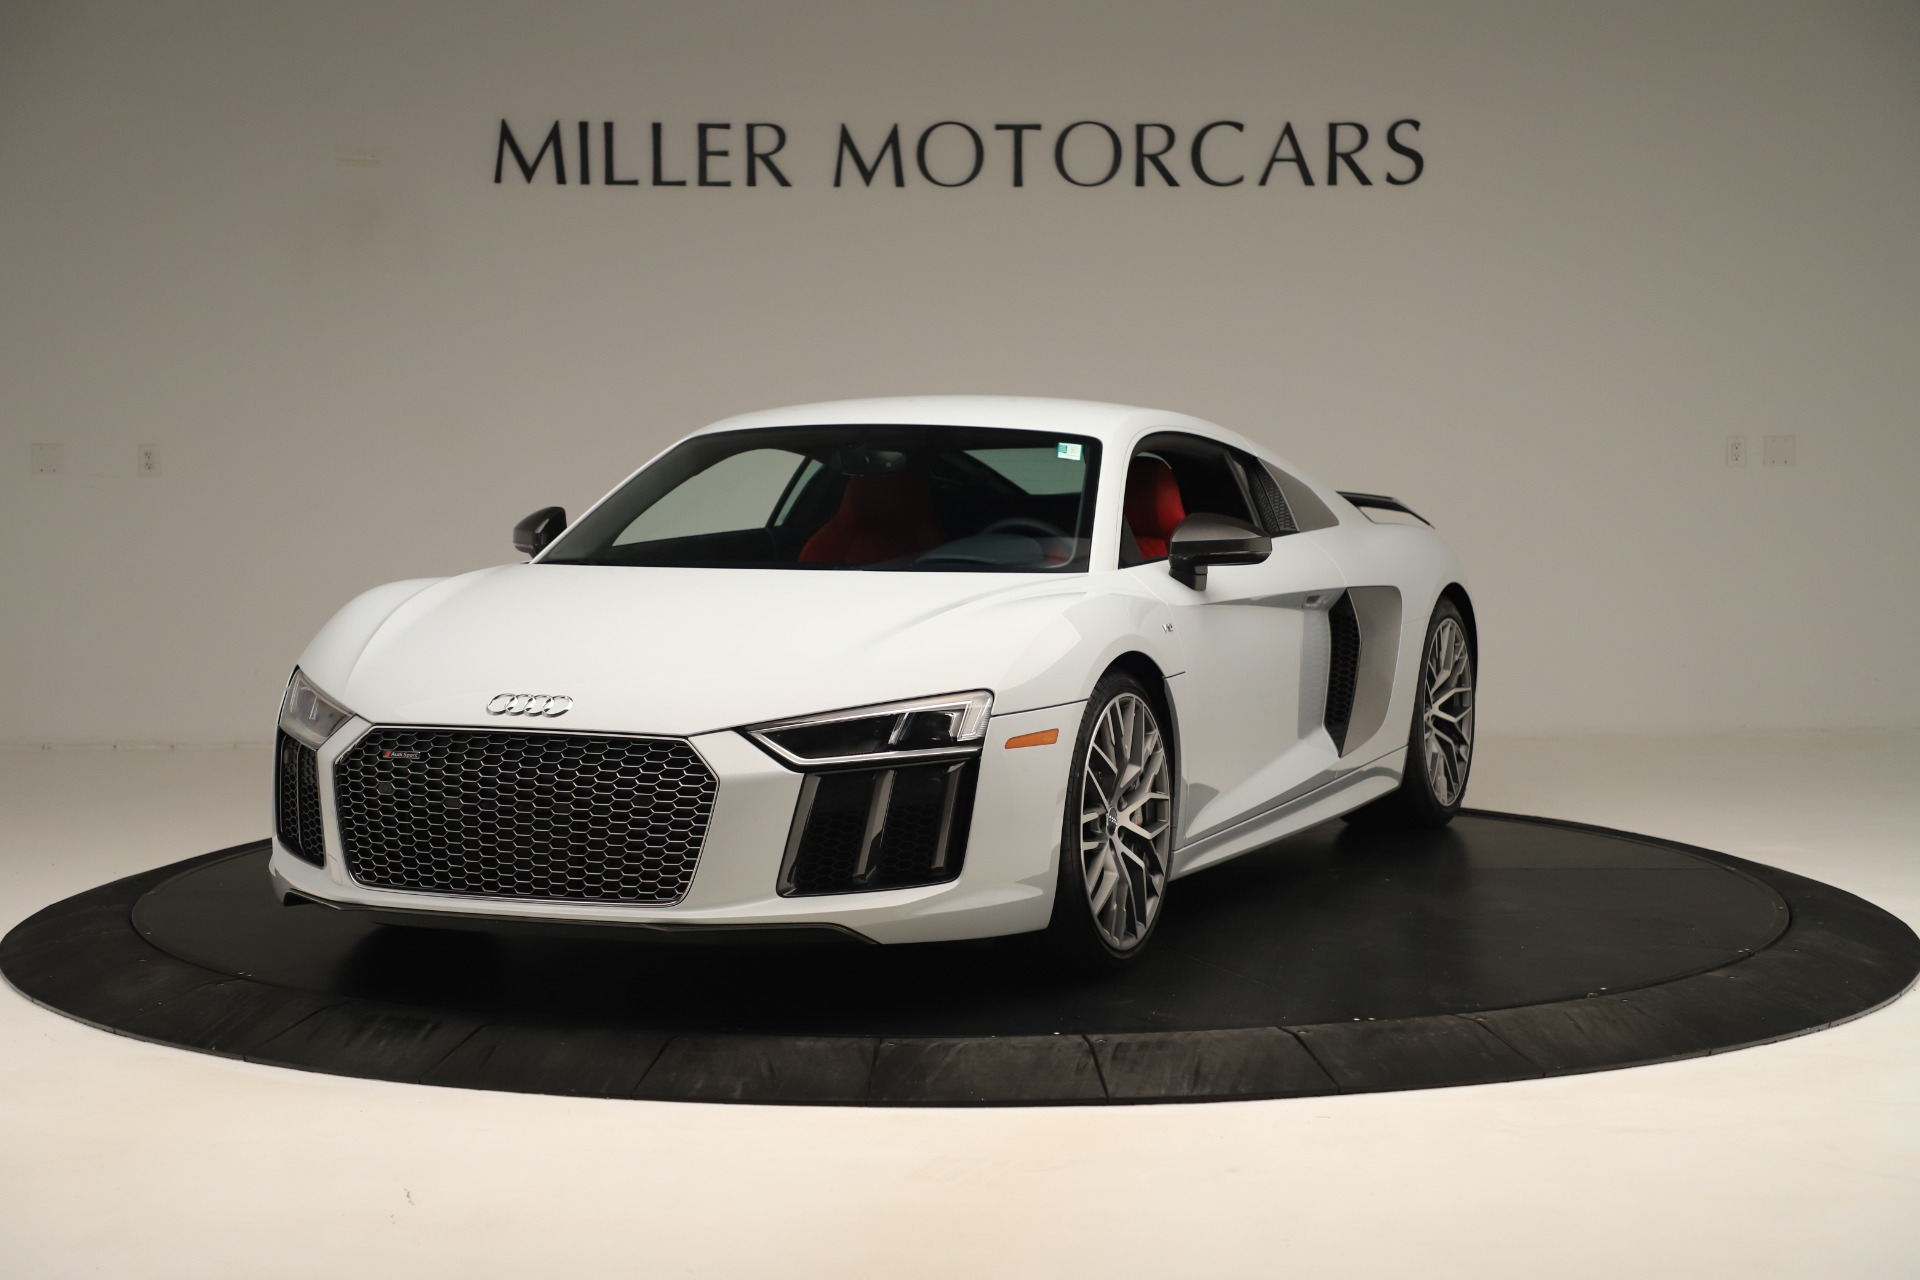 Used 2018 Audi R8 5.2 quattro V10 Plus For Sale In Westport, CT